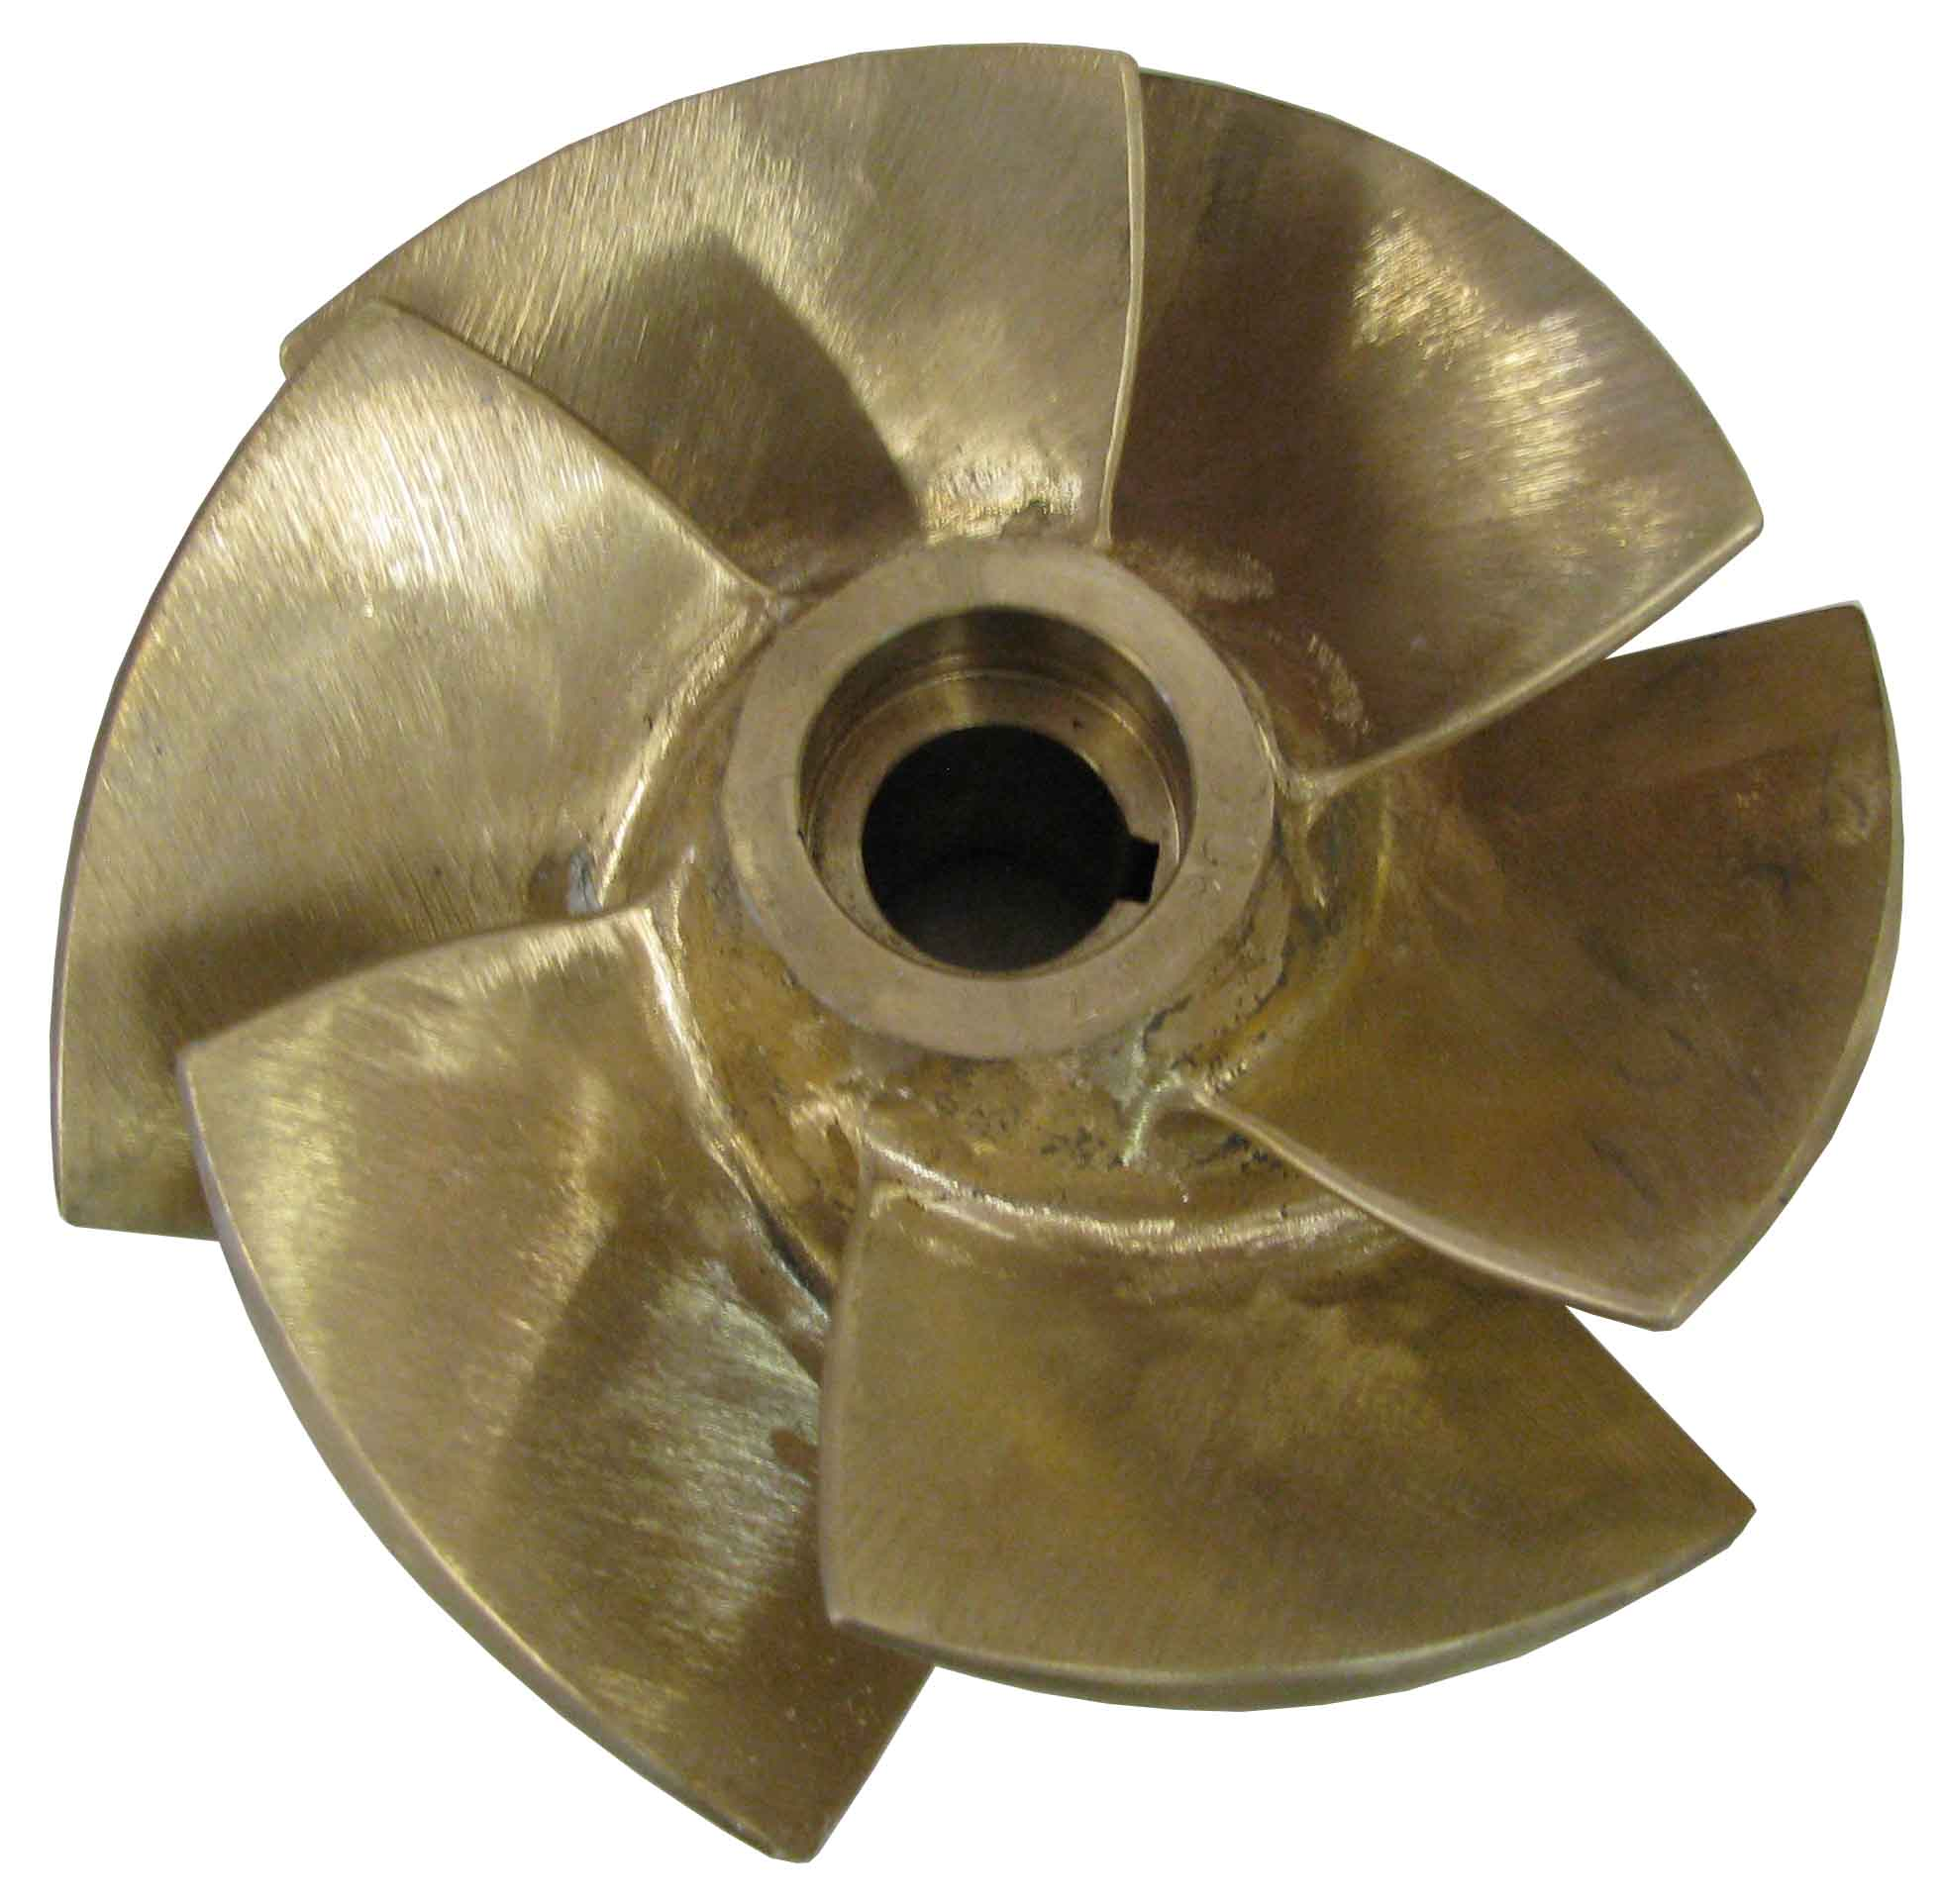 Axial Flow Impeller : Impeller hydratechpumps